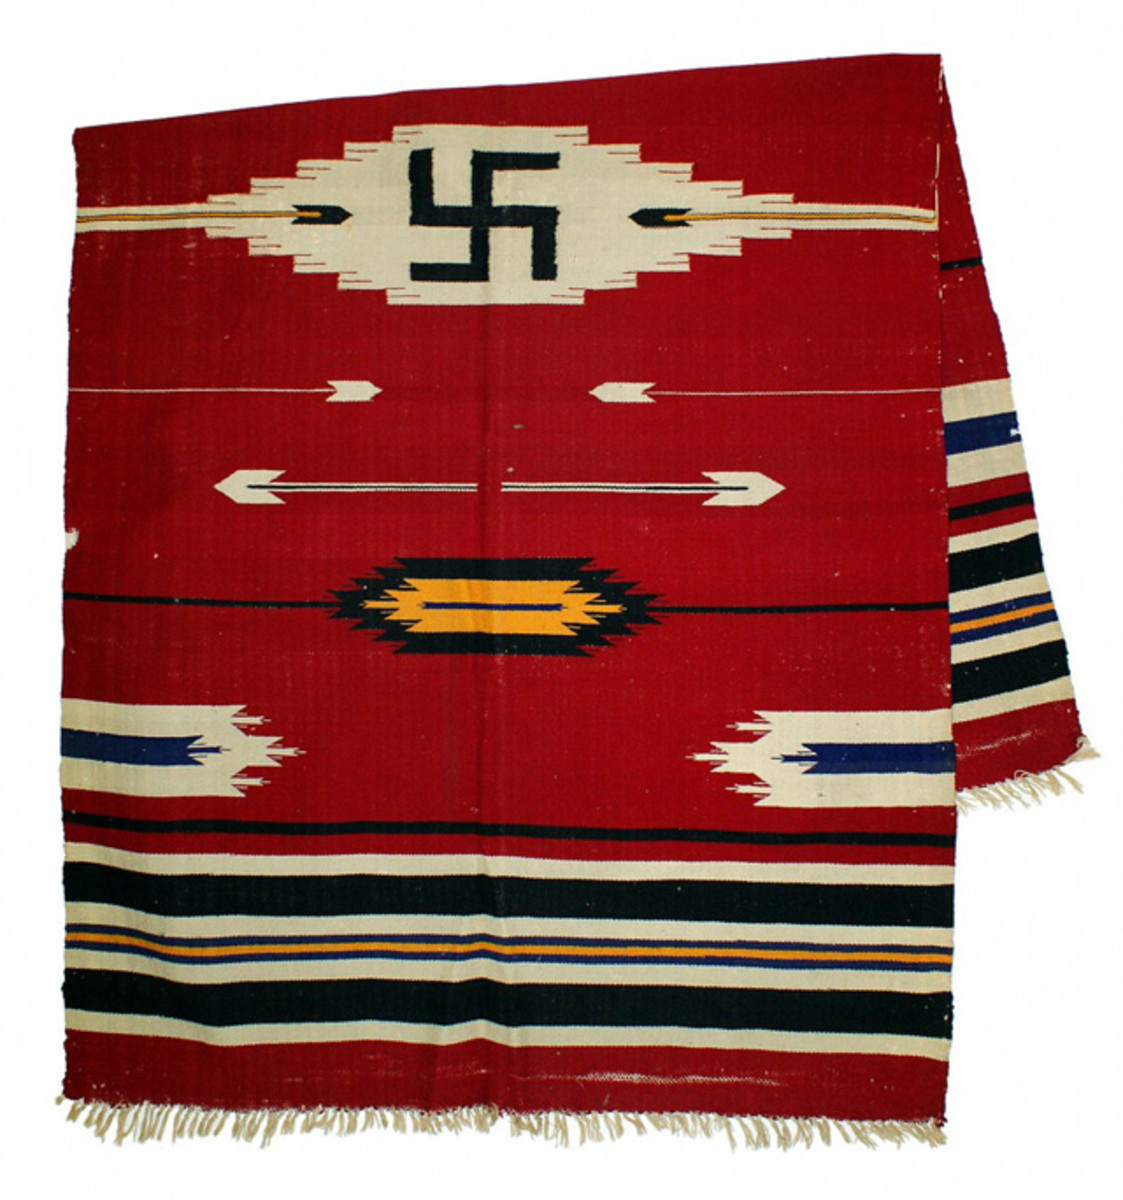 Navajo blanket made in the second half of the 19th century and measuring 39 inches by 64 inches, red weaving with a swastika graphic (minimum bid: $500).